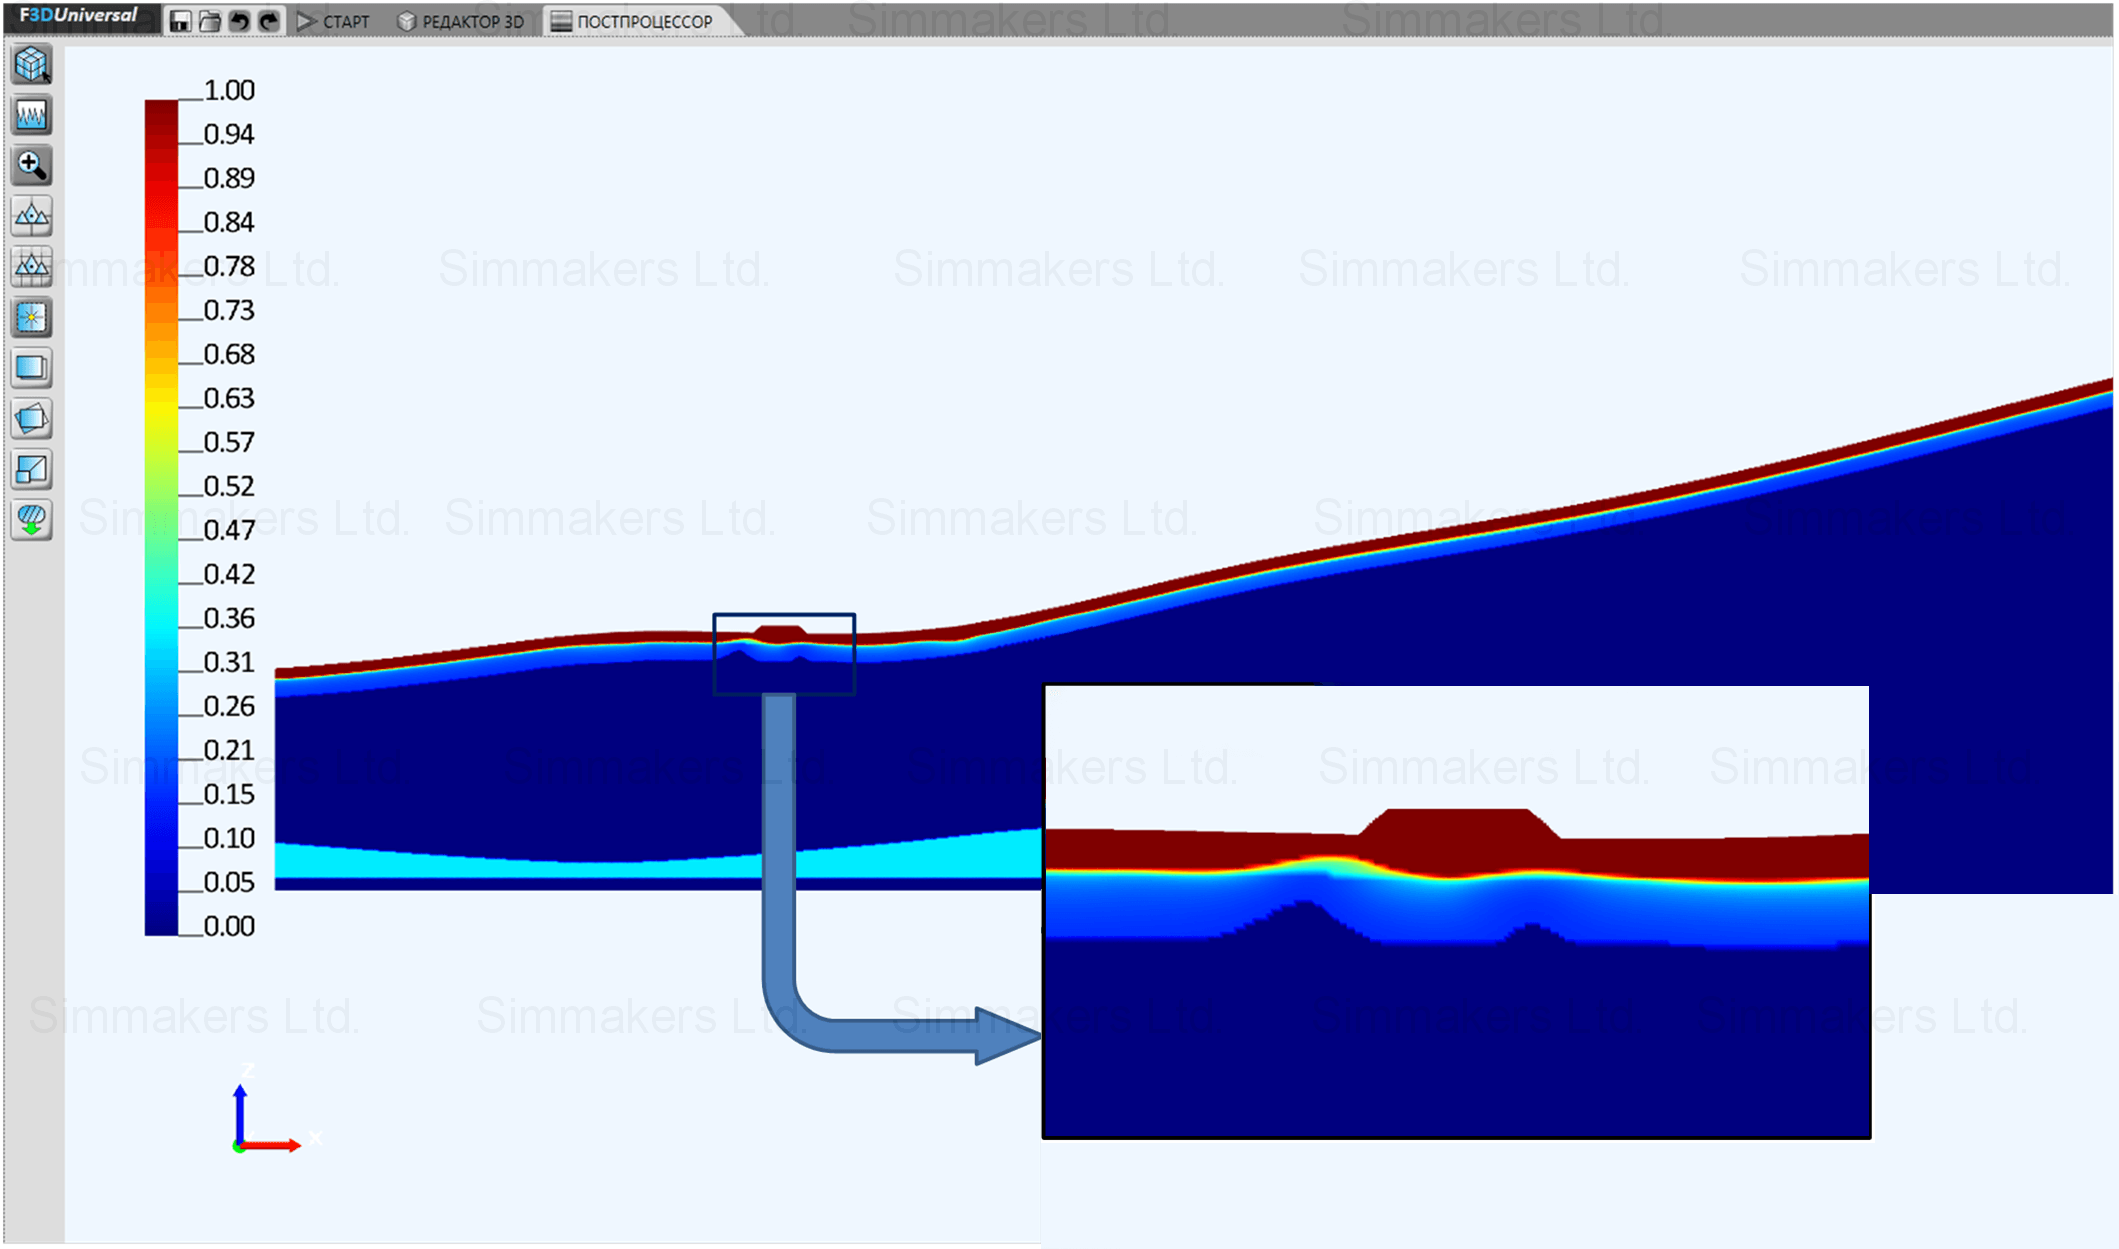 Relative unfrozen water content distribution after 2 years in summer  for increased filtration velocity (computational domain cross section)